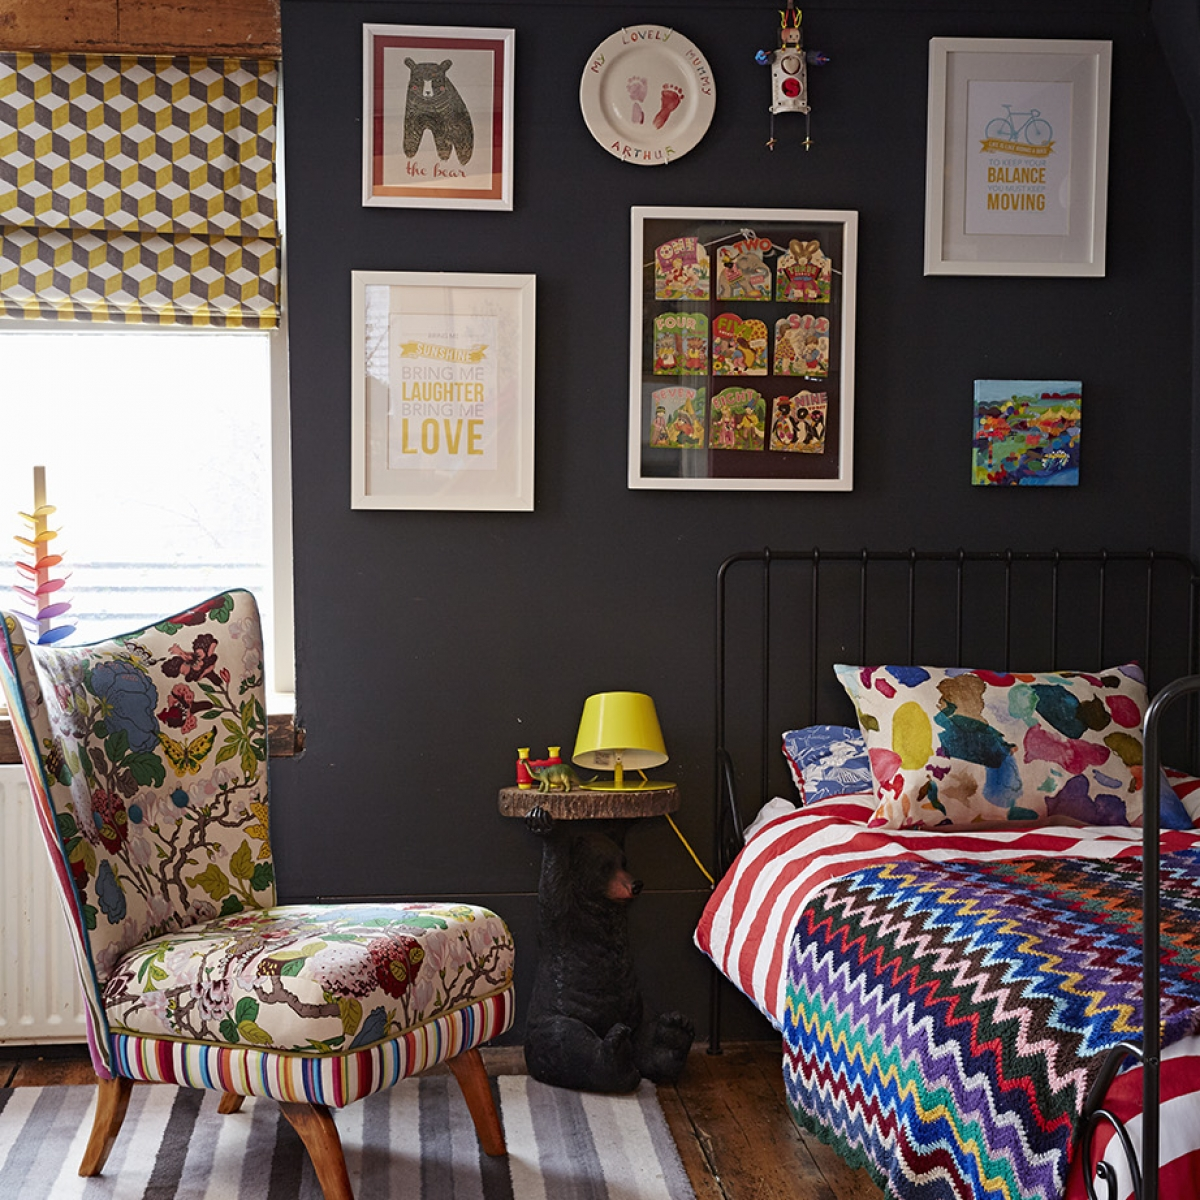 Kids bedroom designed by Sophie Robinson in her signature black with pops of bright colour which is ideal for a kids room as the brights look striking against the dark interior. photograph by Alun Callender